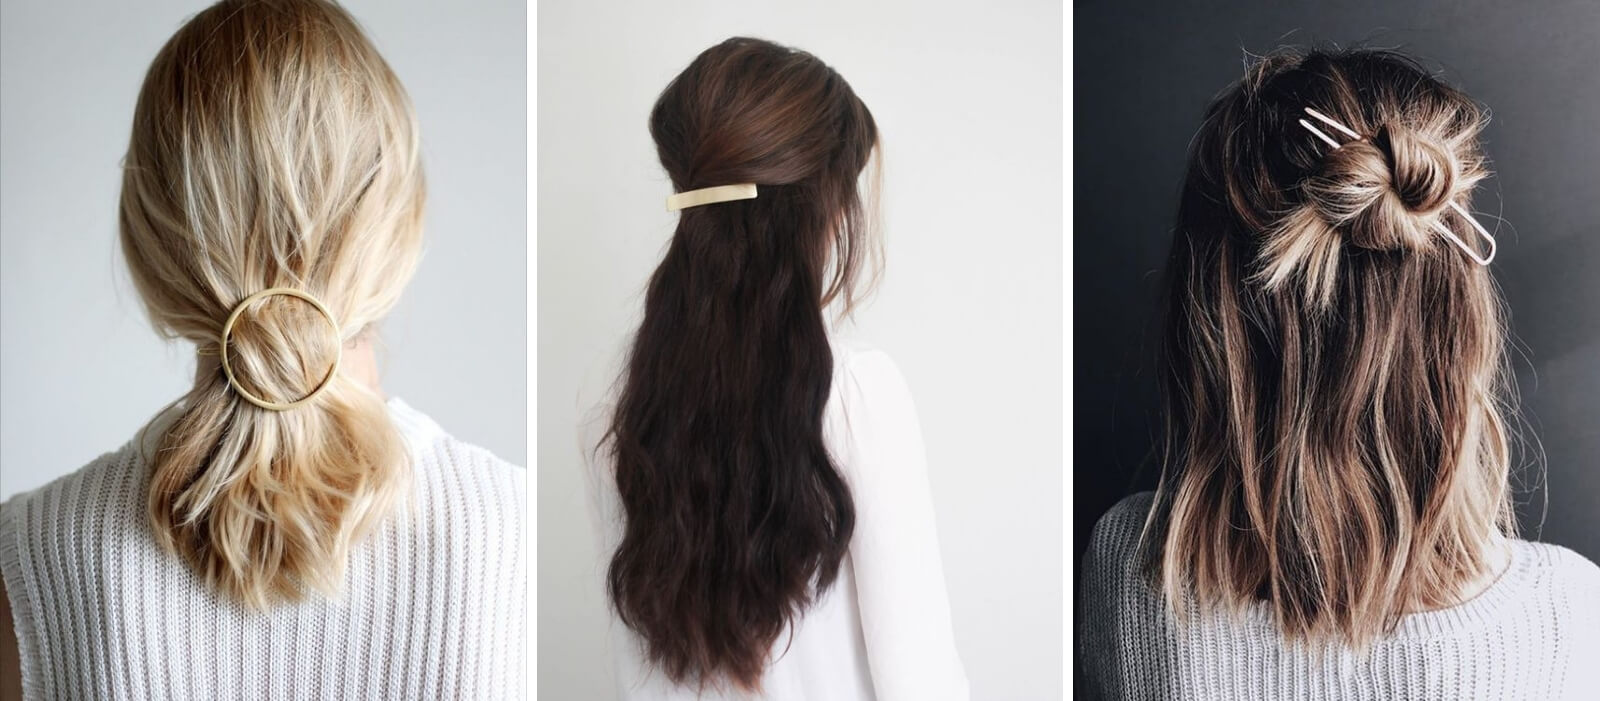 Women with hair barrettes